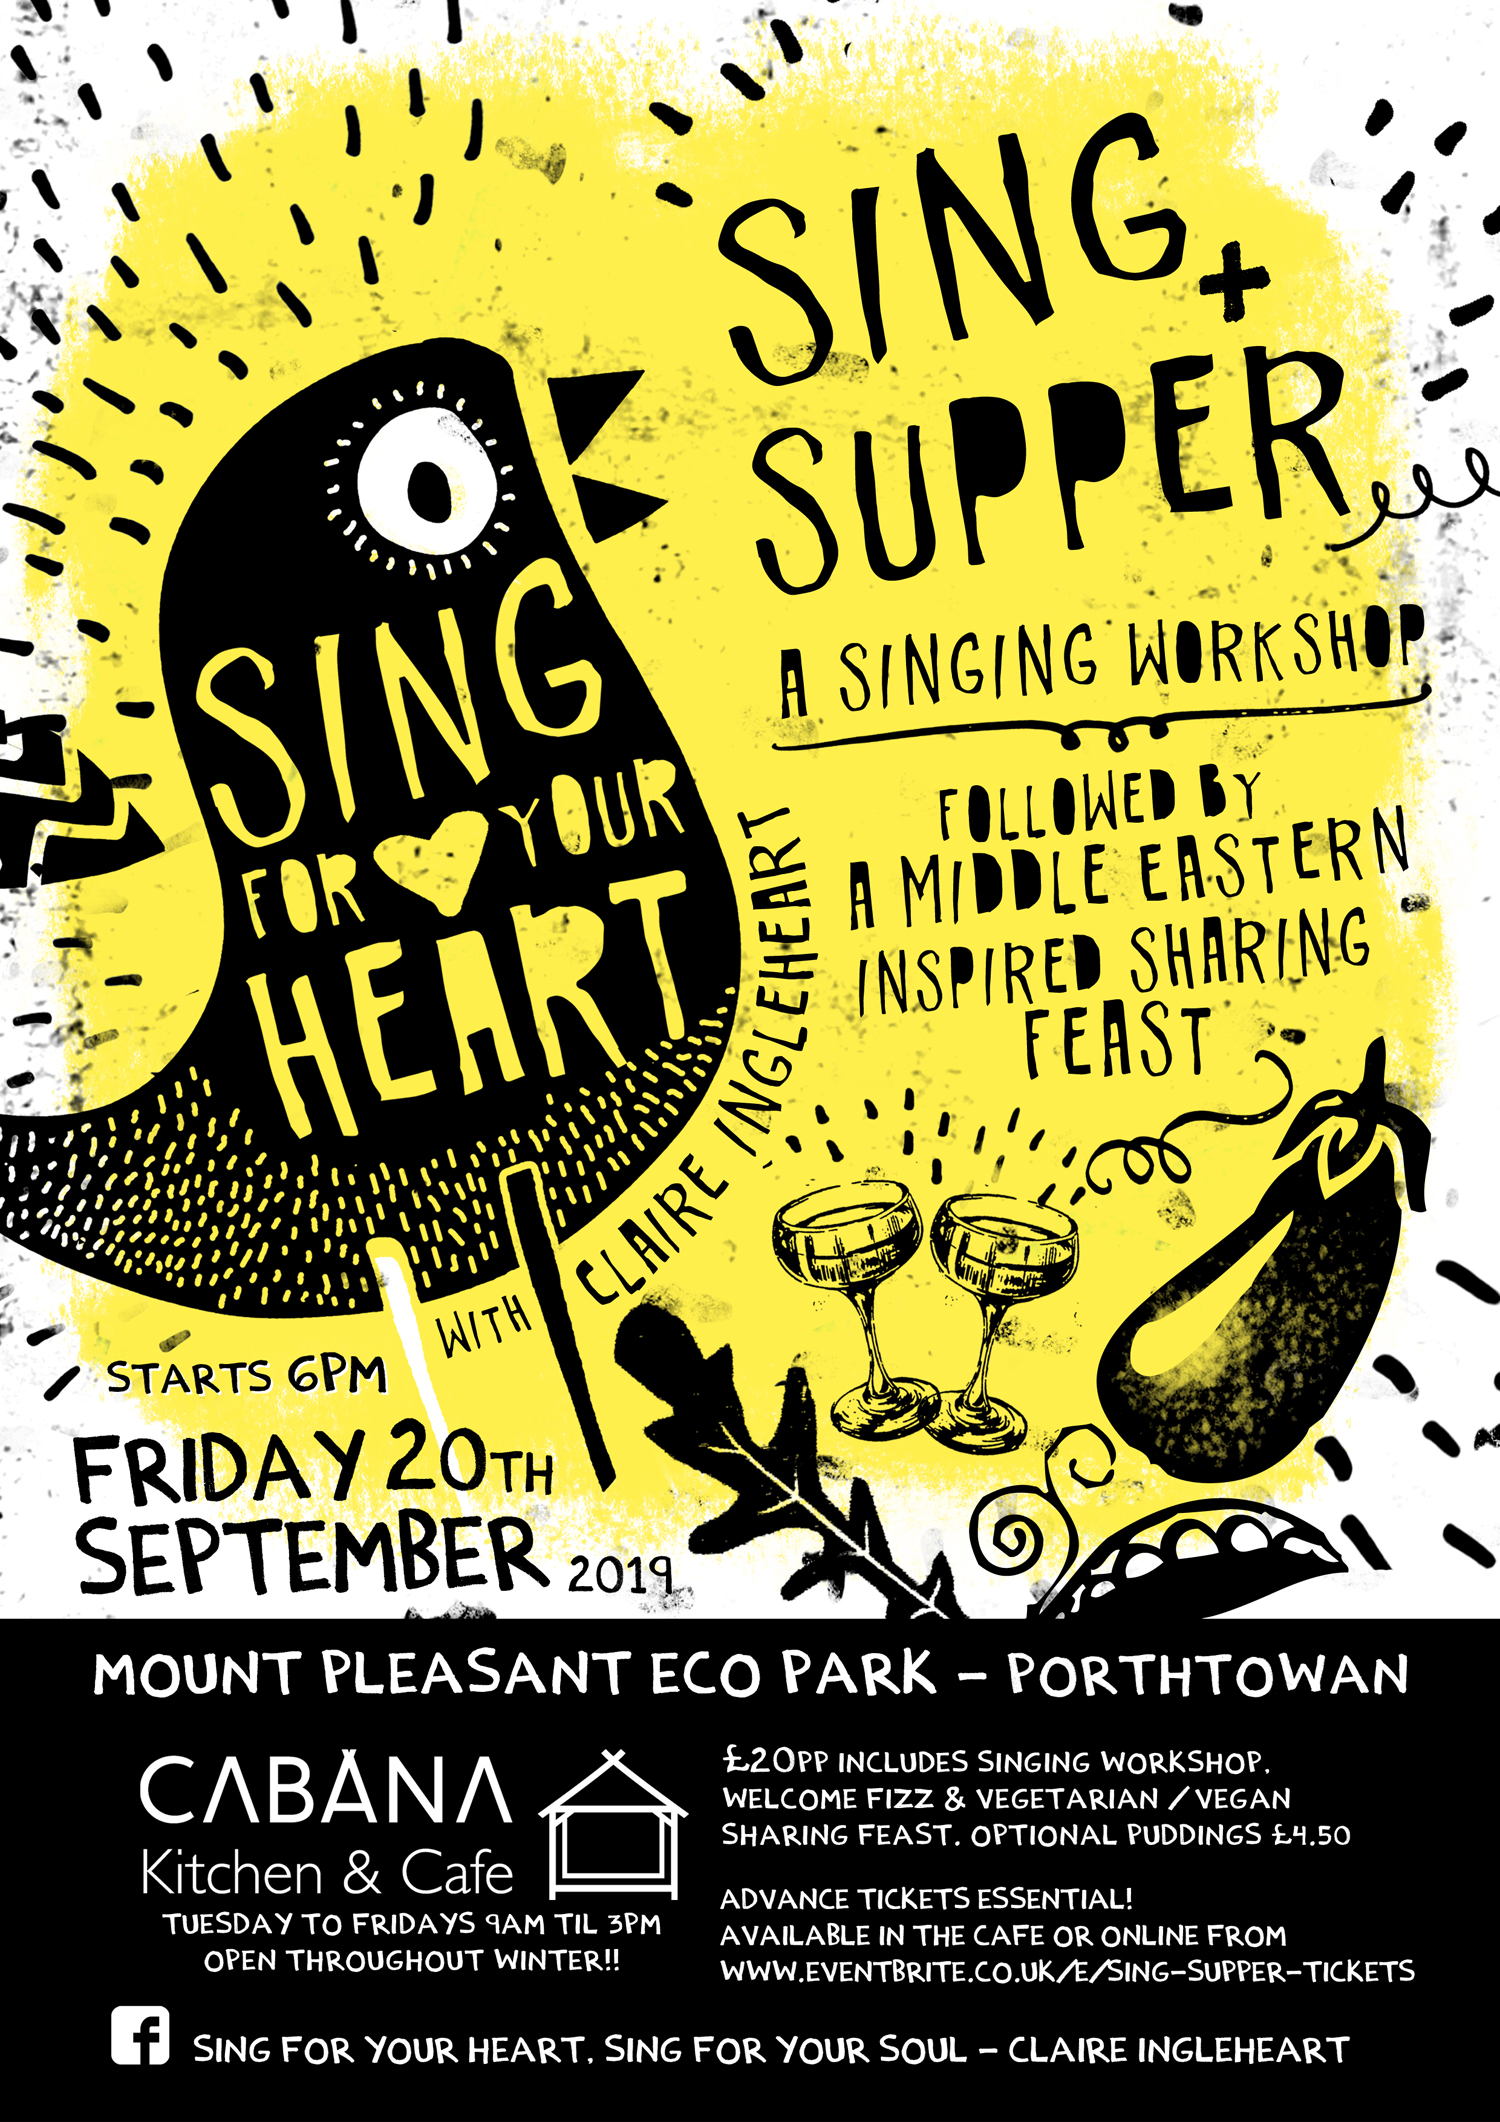 Sing and Supper Eco Park Cornwall